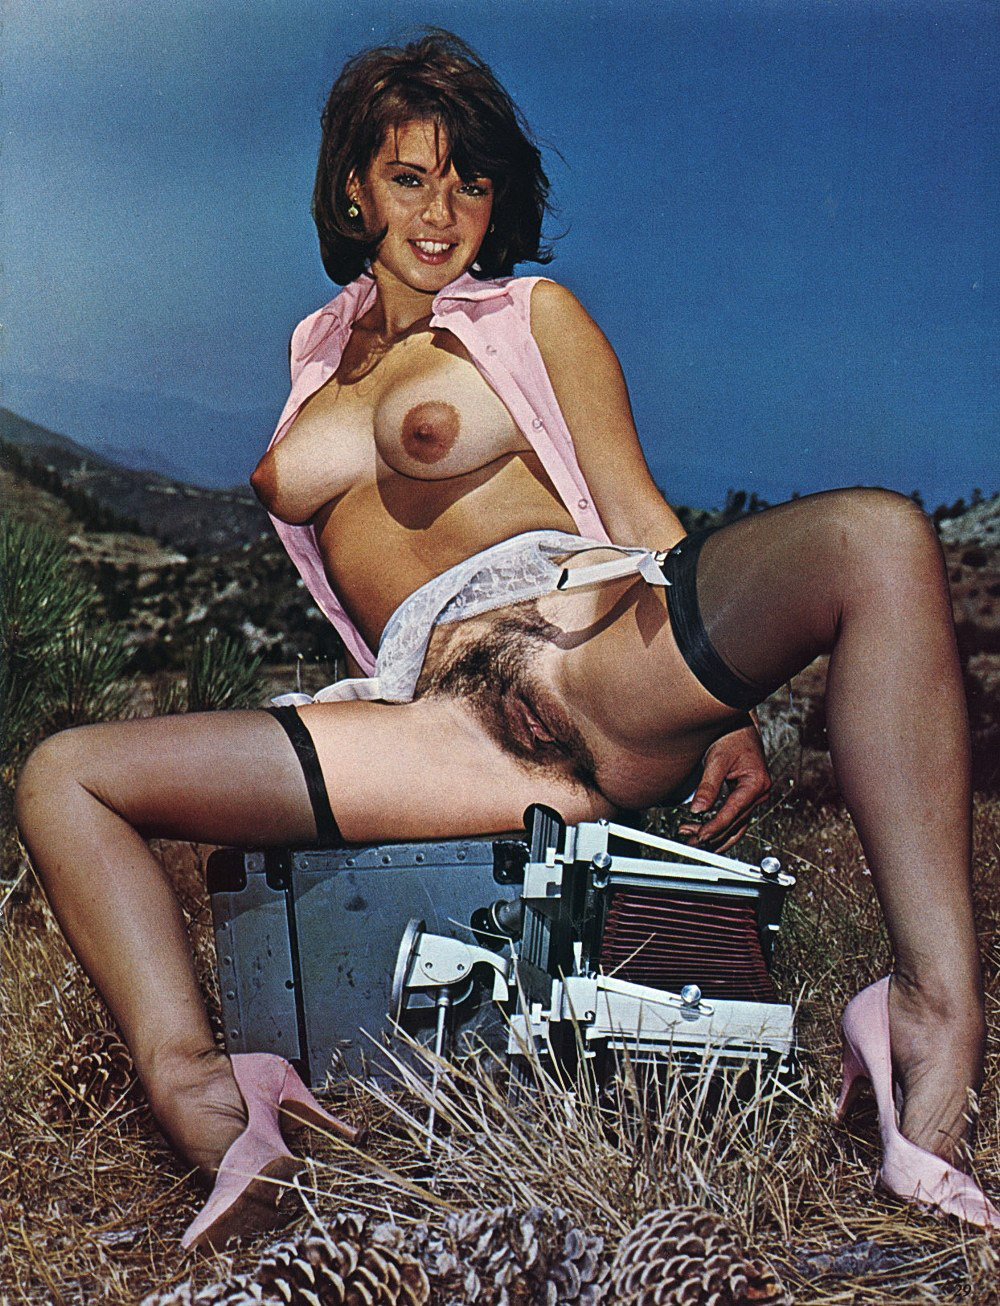 vintage-pinup-hairy-girl-in-stockings-with-camera.jpg